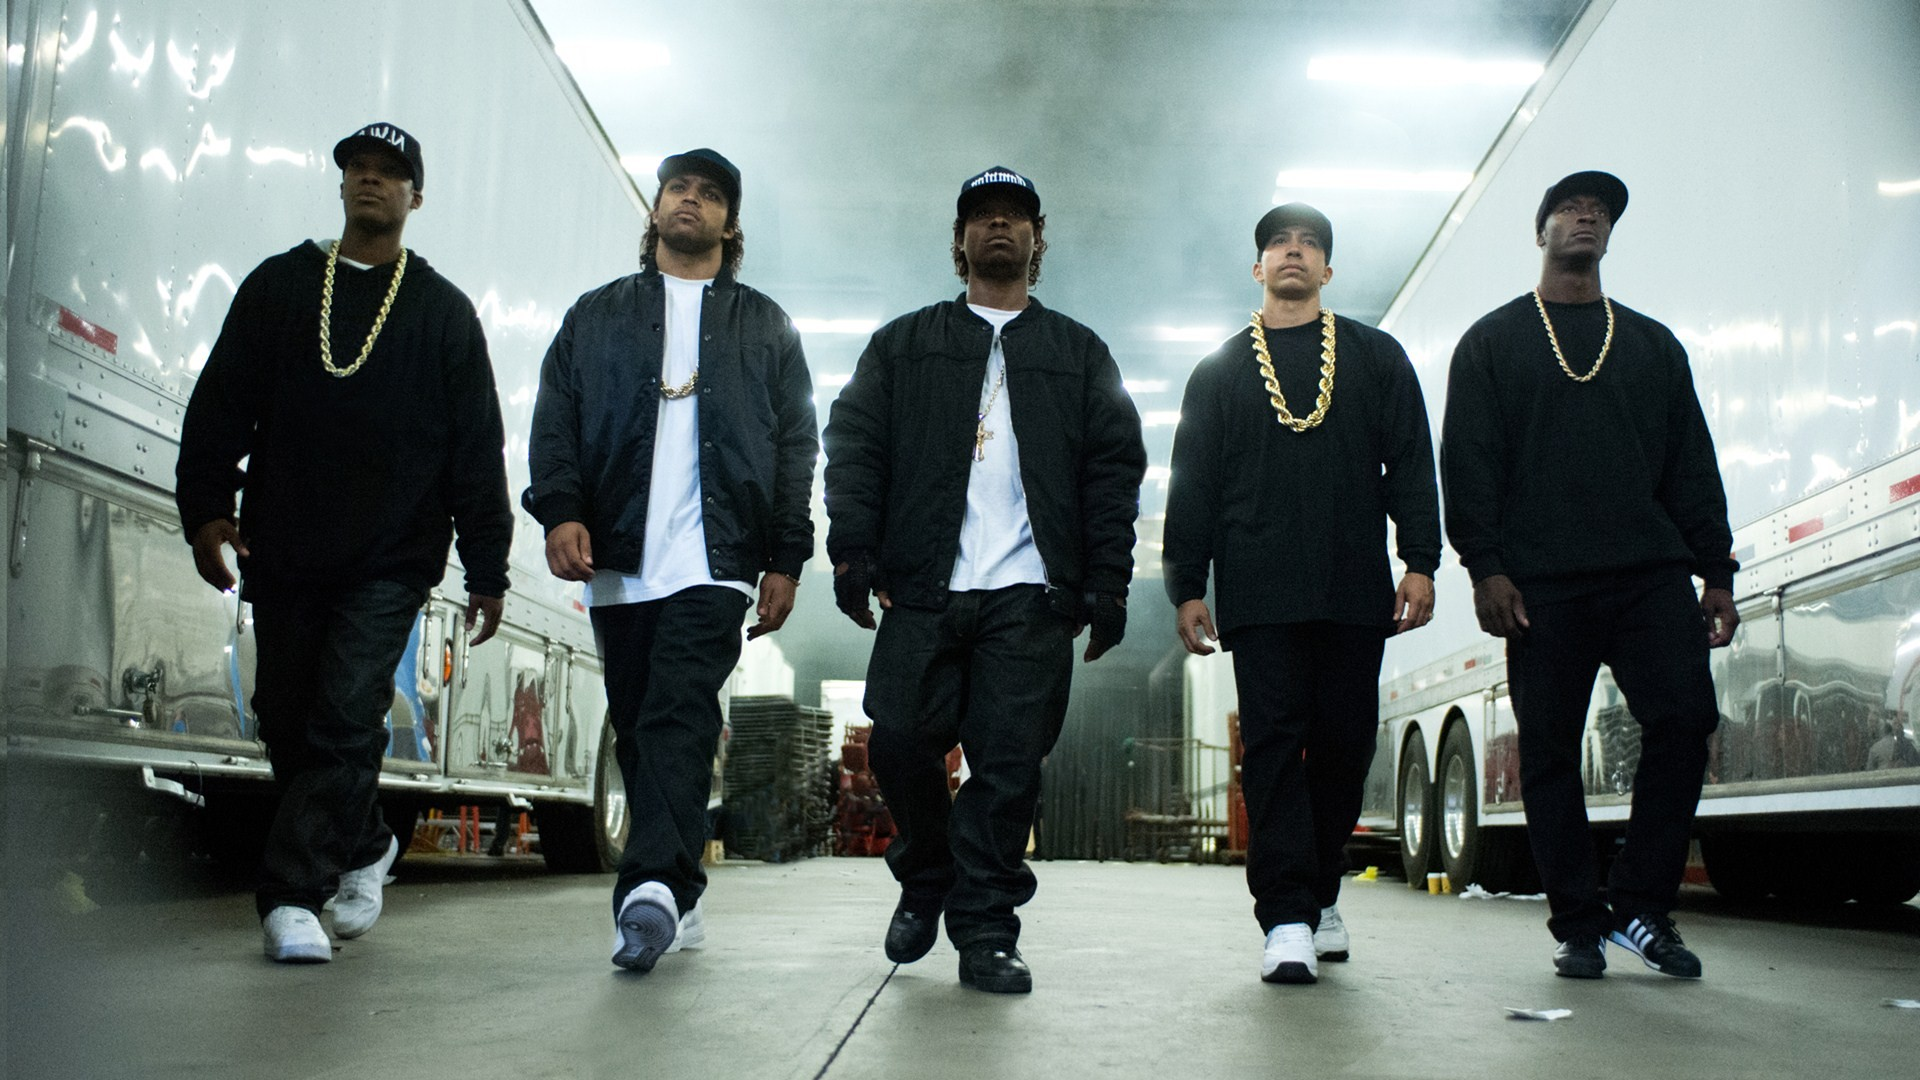 (L-R) Corey Hawkins as Dr. Dre, O'Shea Jackson, Jr. as Ice Cube, Jason Mitchell as Eazy-E, Neil Brown Jr. as DJ Yella, and Aldis Hodge as MC Ren in 'Straight Outta Compton.